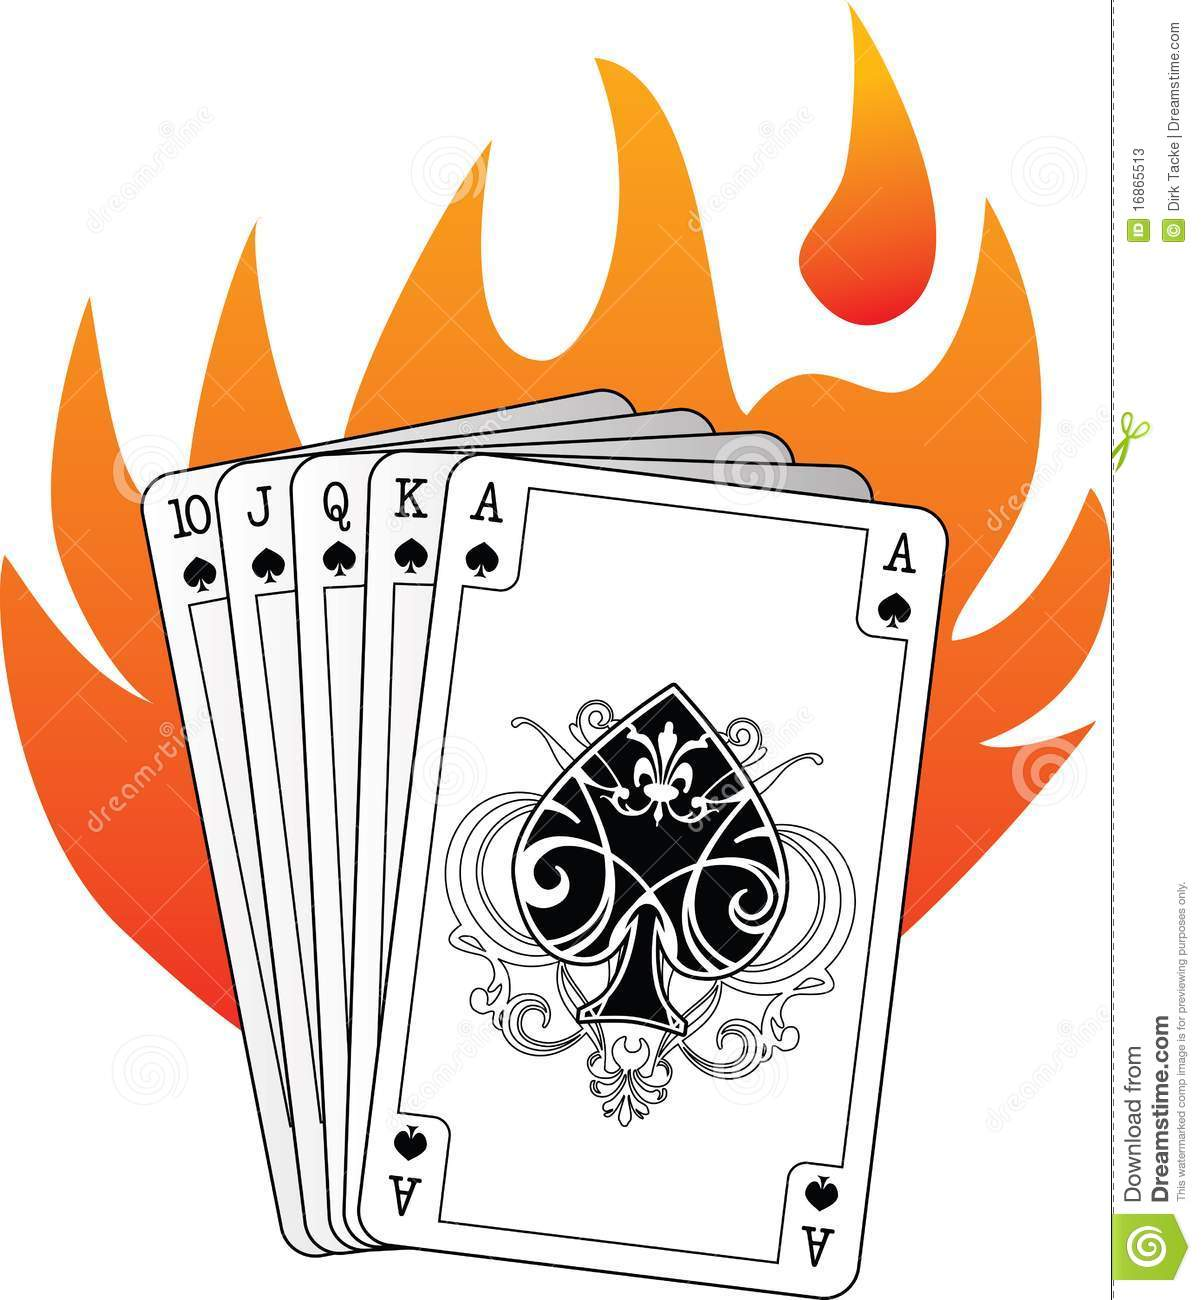 Royal Flush In Spades With Flames Stock Photos - Image ...